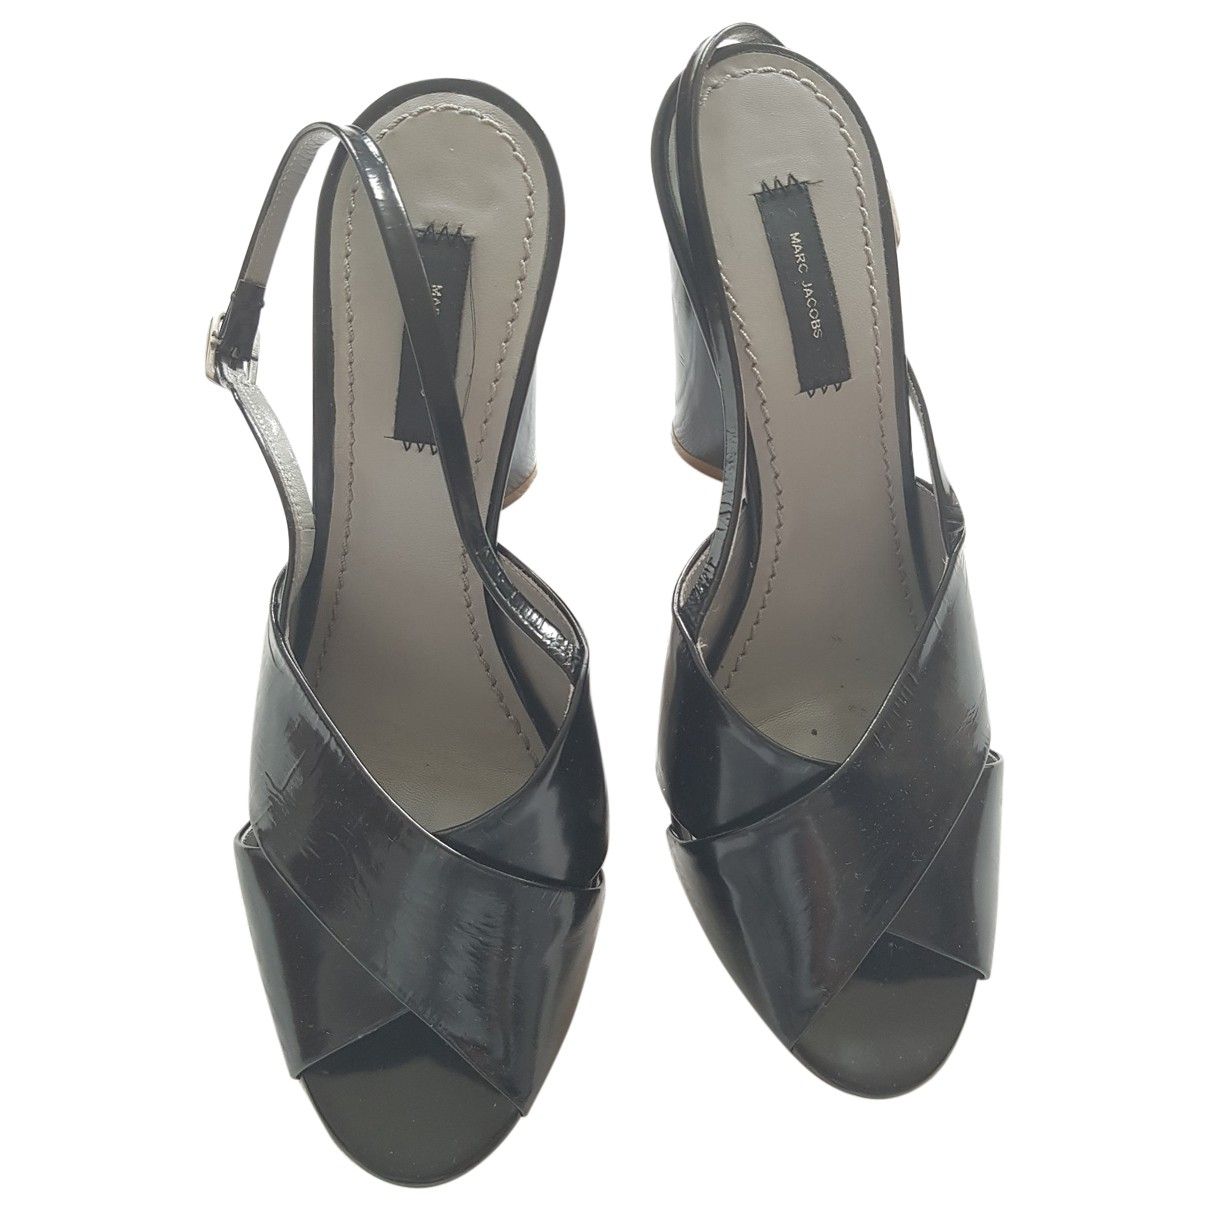 Marc Jacobs \N Black Patent leather Sandals for Women 39.5 EU